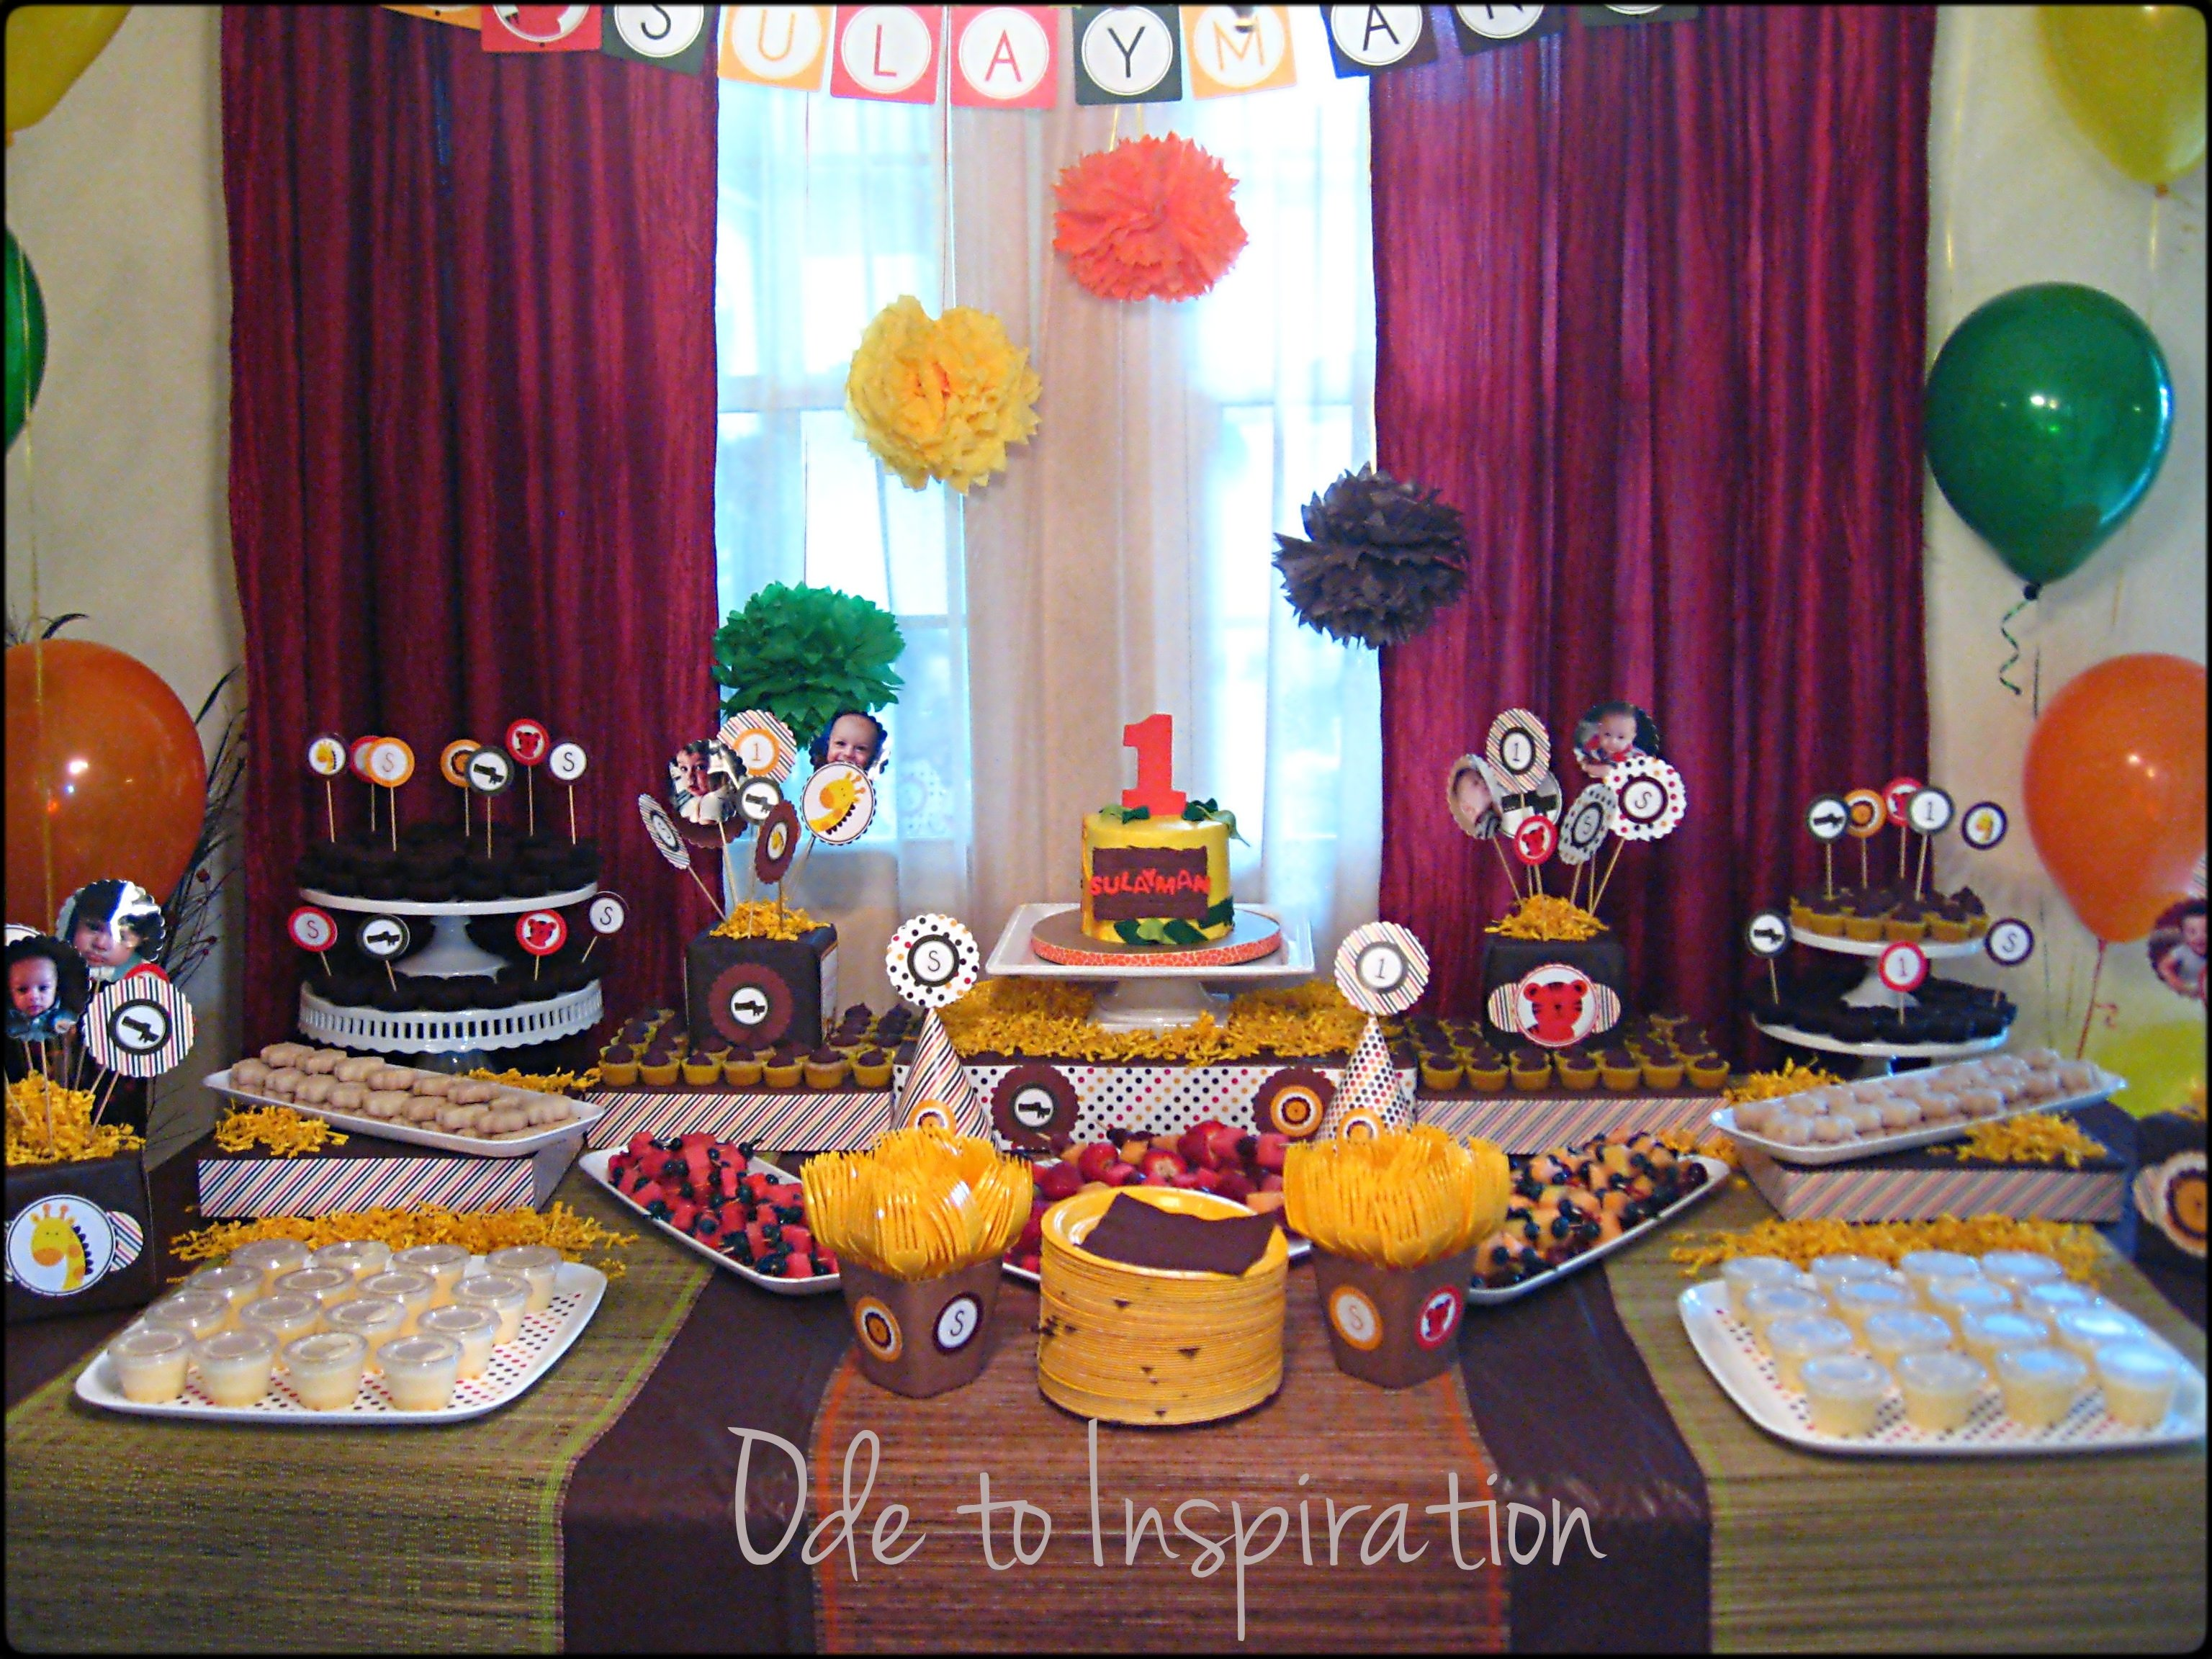 10 Amazing Themed Party Ideas For College birthday party theme ideas for adults unique 21st loversiq 2 2021